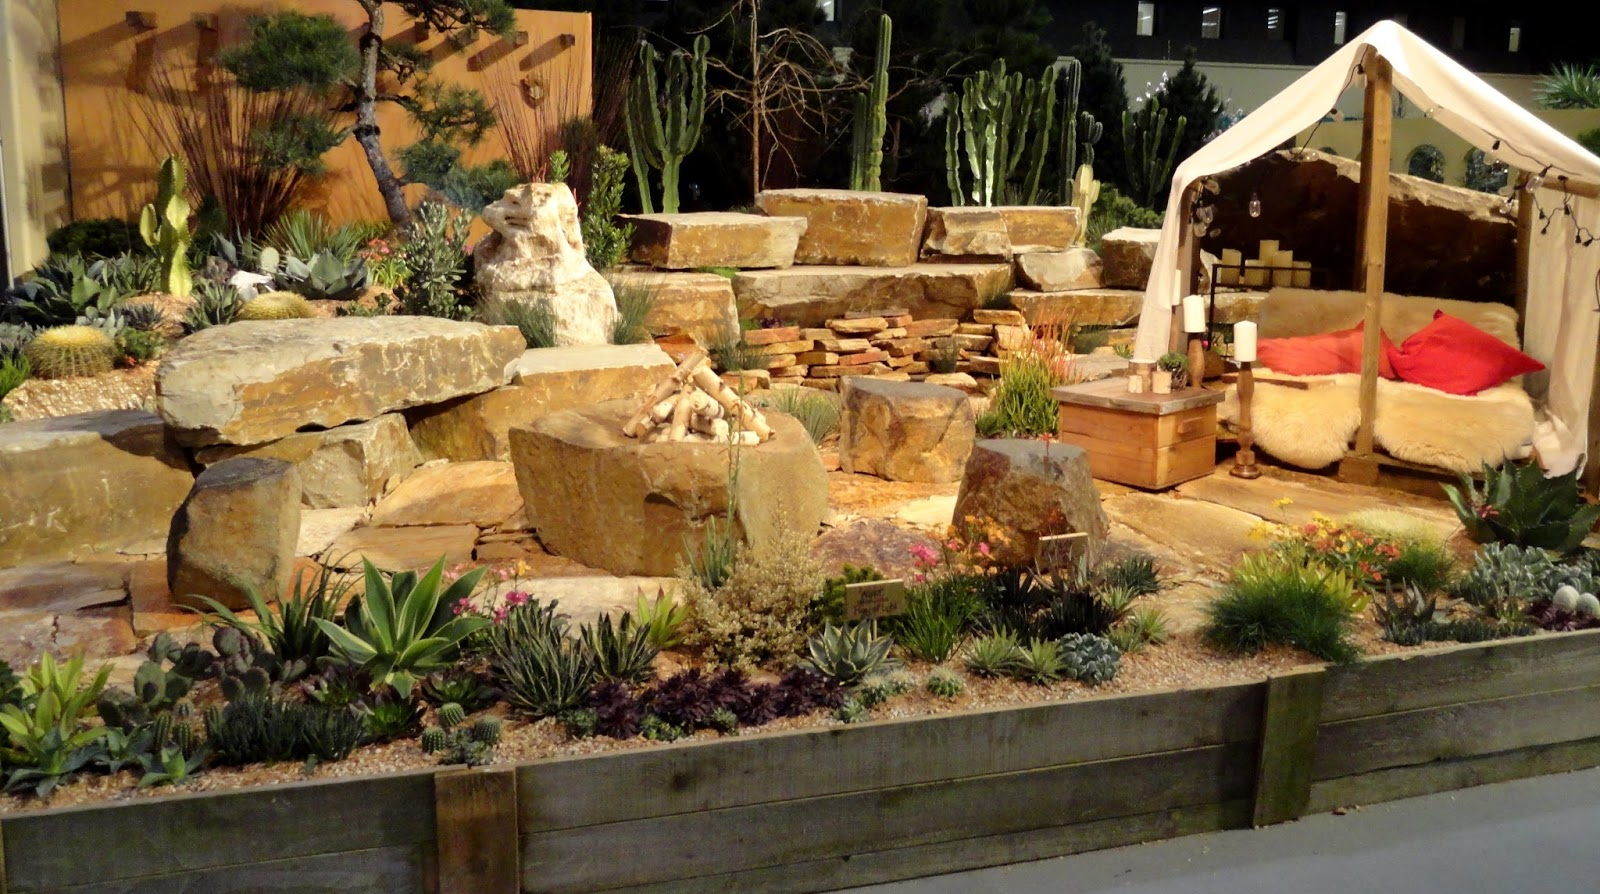 danger garden: NWFG Show display gardens: from the rain-forest to ...